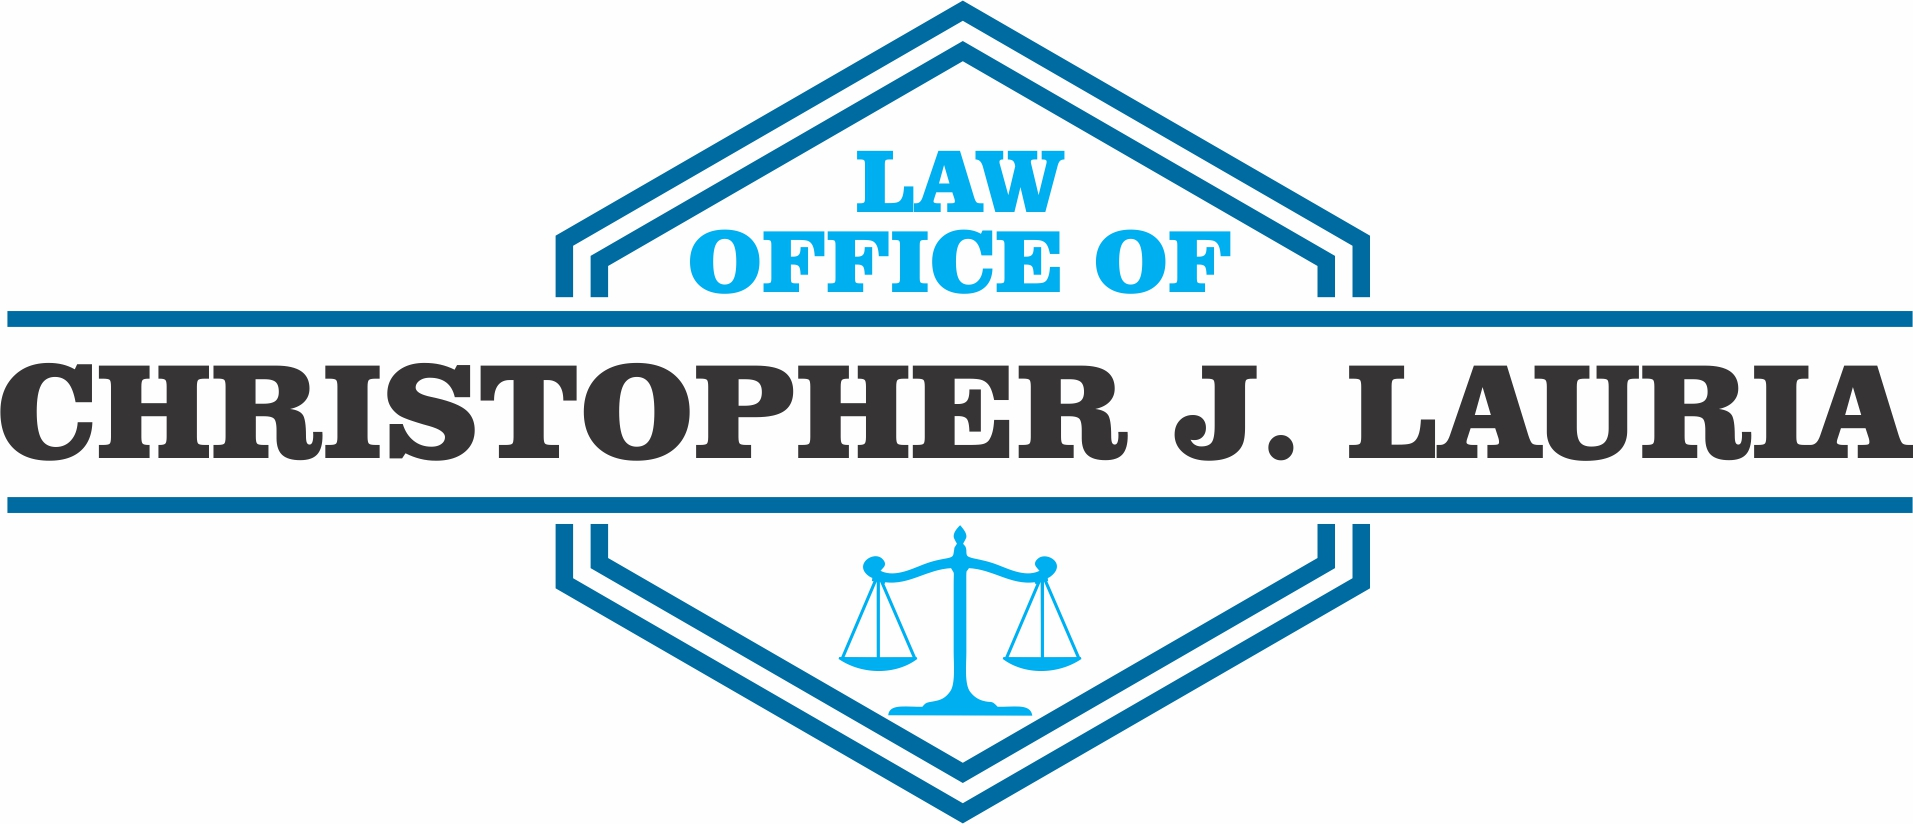 Law office of Christopher J. Lauria (PFC)